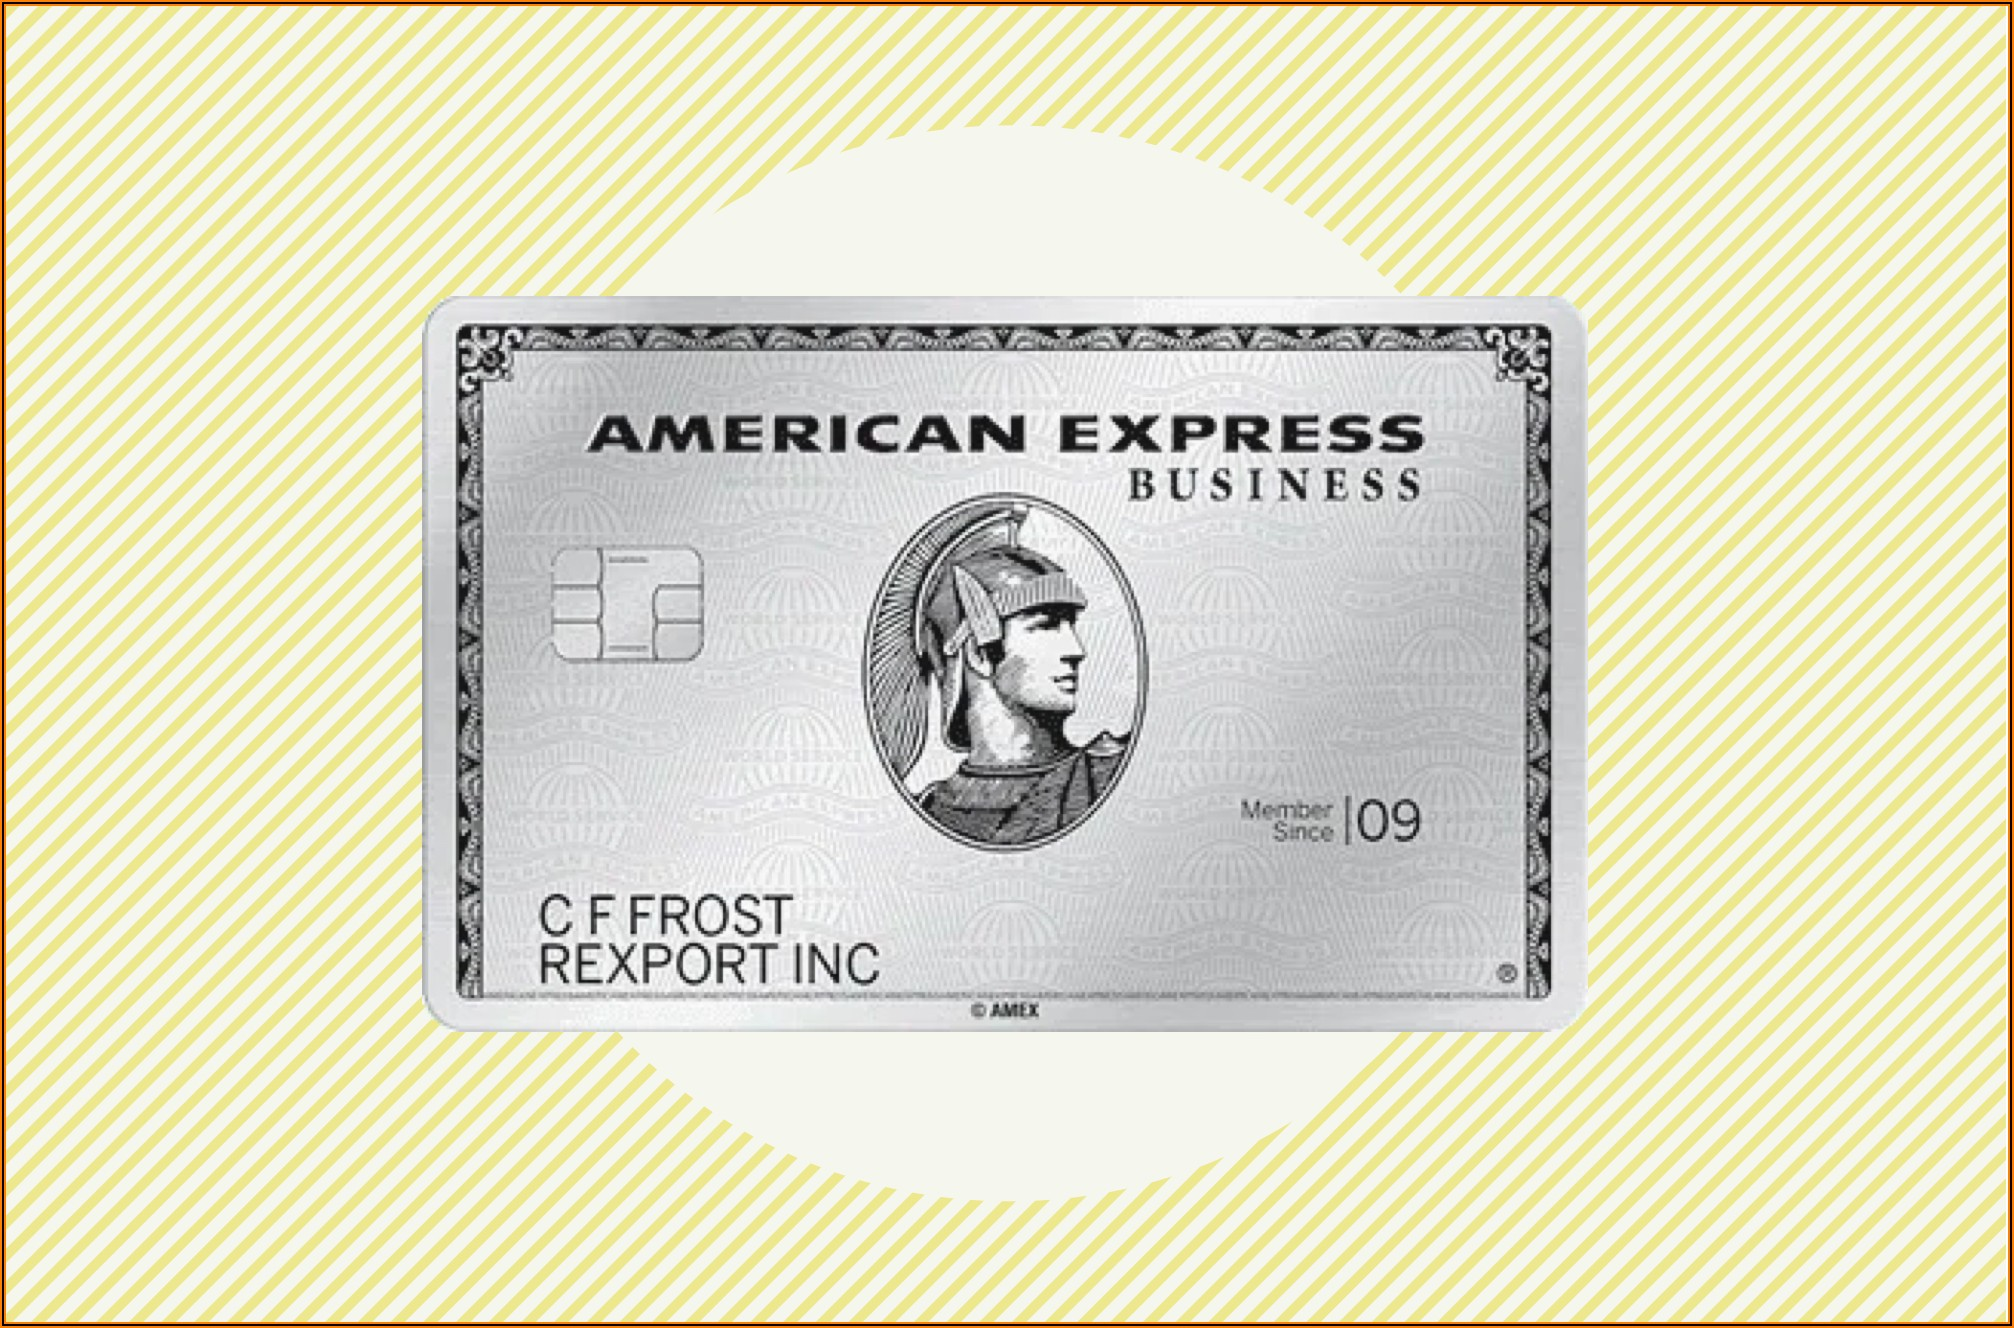 Applying For An Amex Business Card